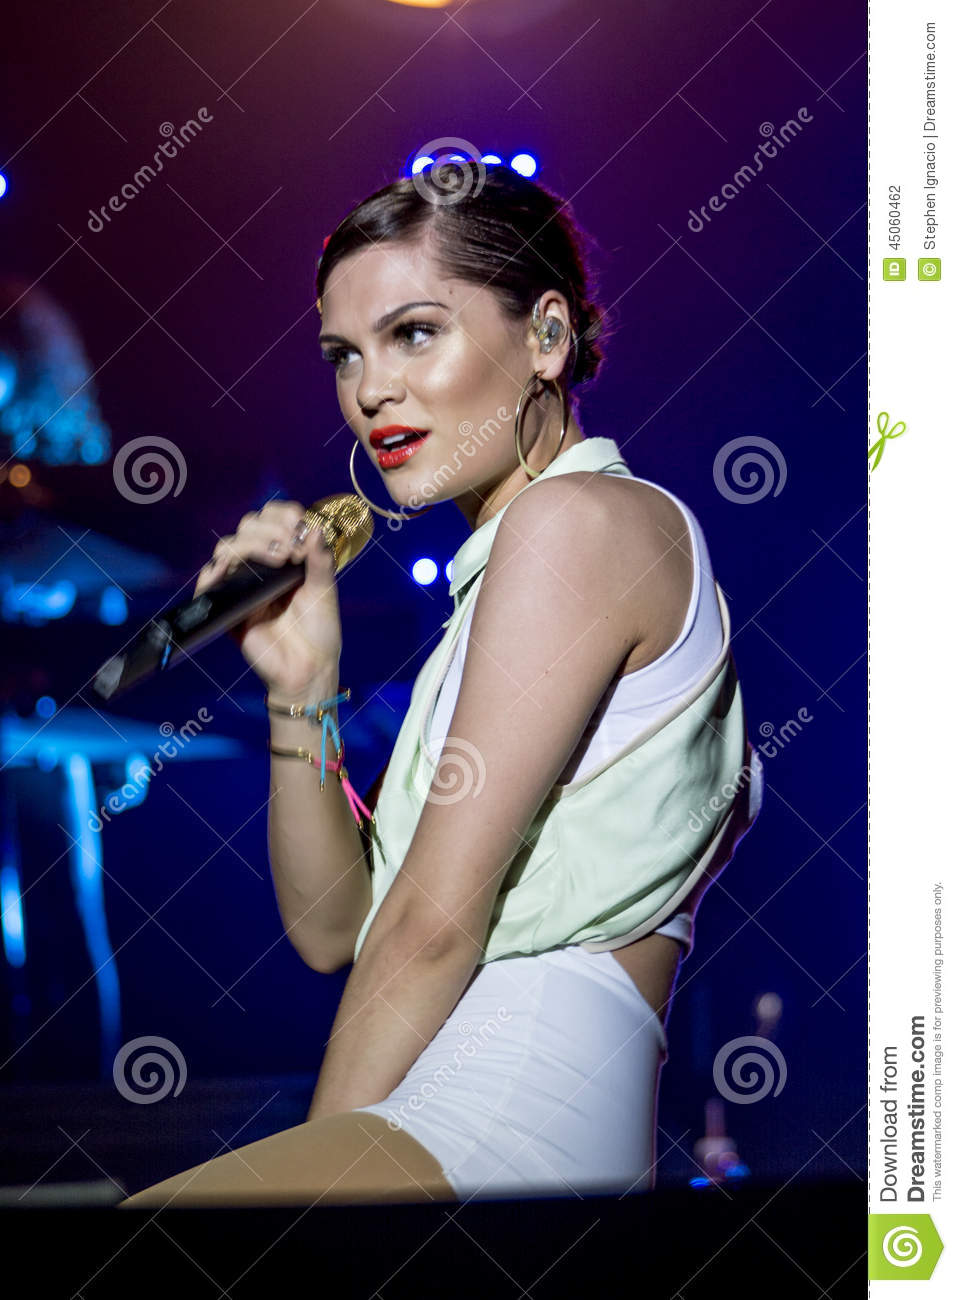 Jessie J Фото british pop star jessie j editorial photography. image of